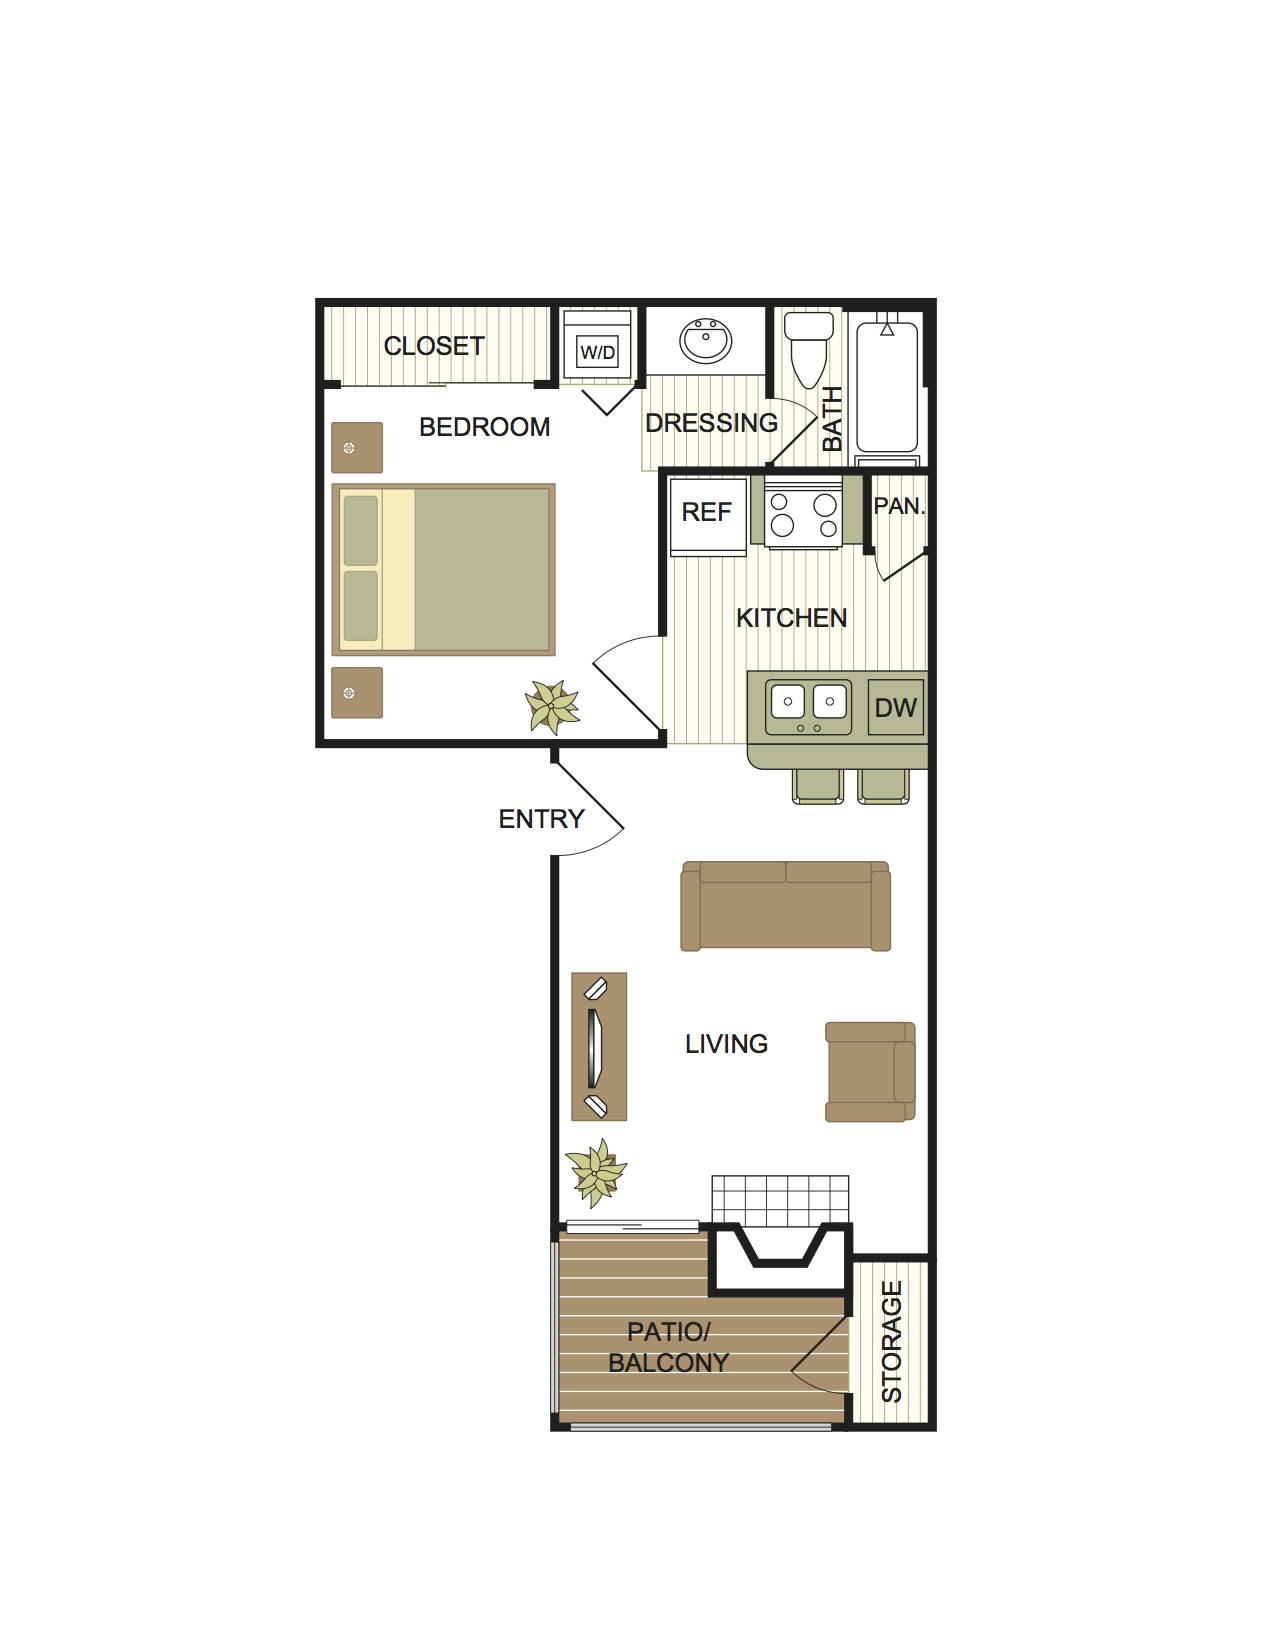 1 Bedroom | 1 Bath Floor Plan 1